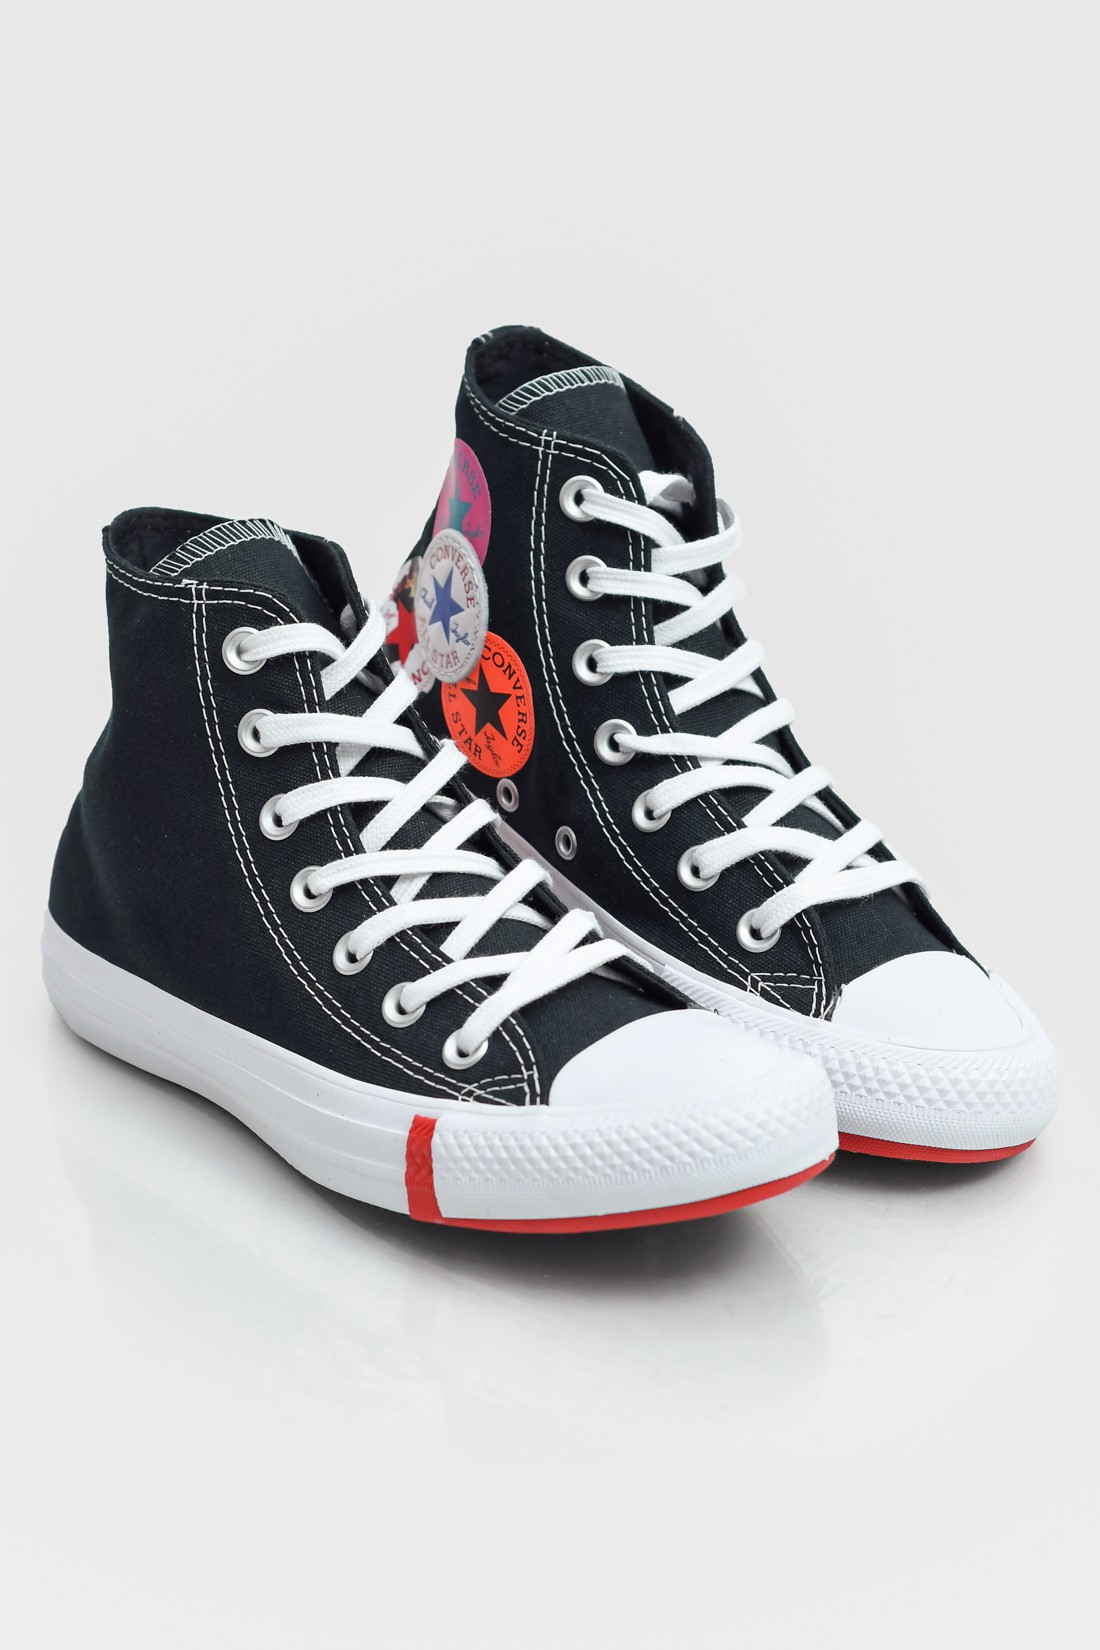 Tenis Botinha All Star Patch